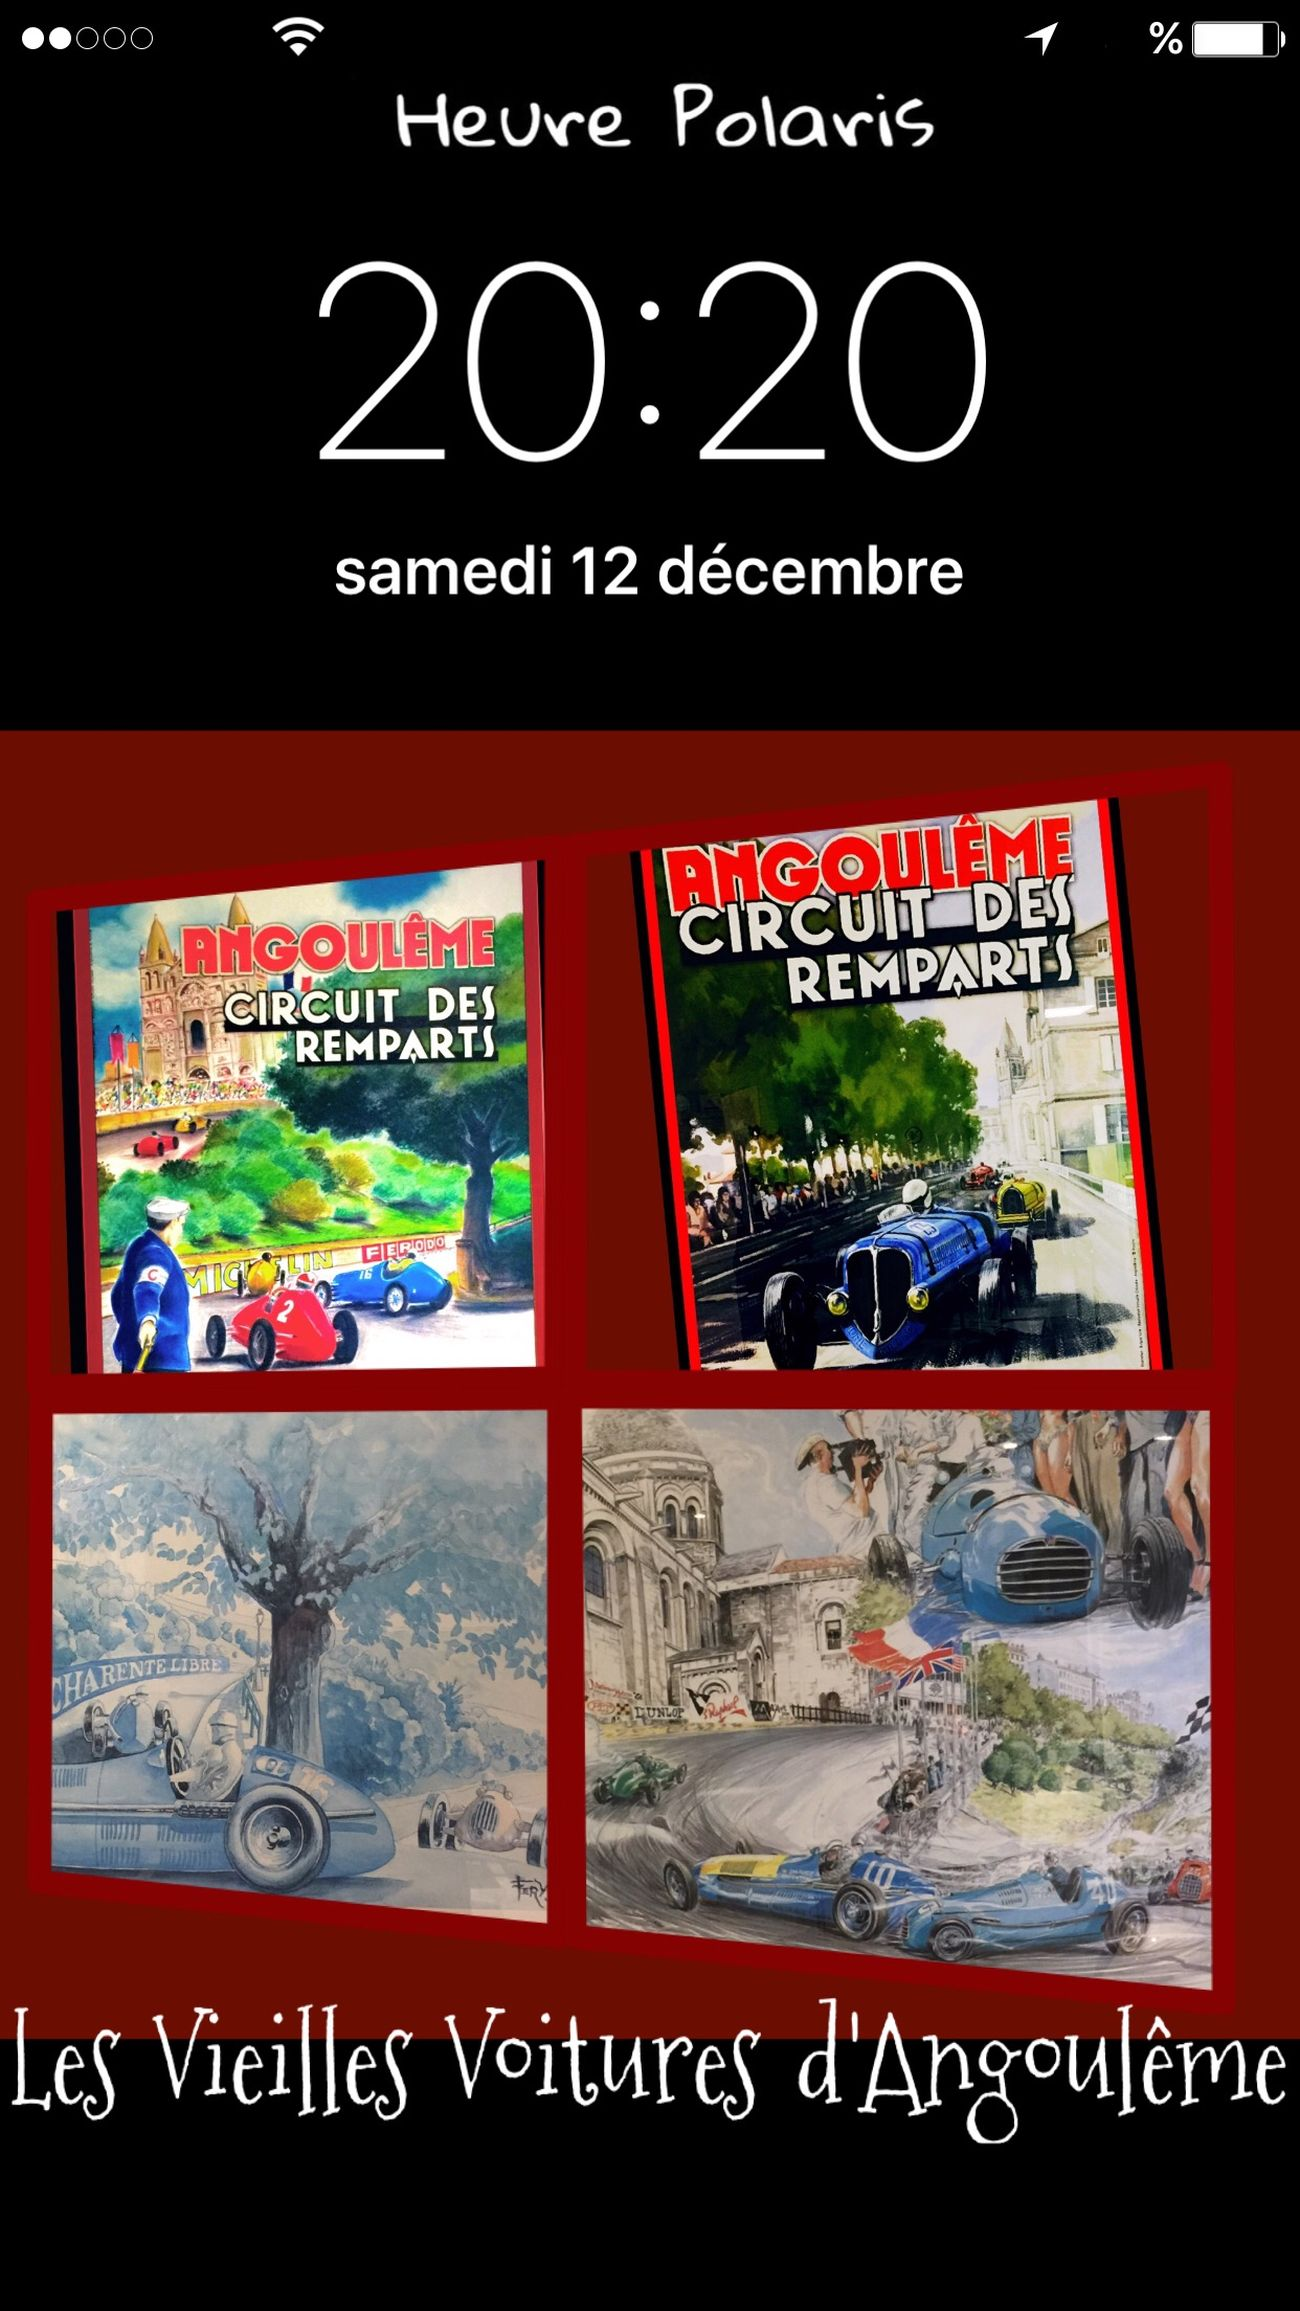 20H20 Les Vieilles Voitures d'Angoulême HEURE POLARIS Vieillevoiture Vieille Voiture Automobile Lithography Lithographie Circuit Des Remparts Angouleme Old Car Old Cars Old Cars Exposition Voitures Anciennes Voiture